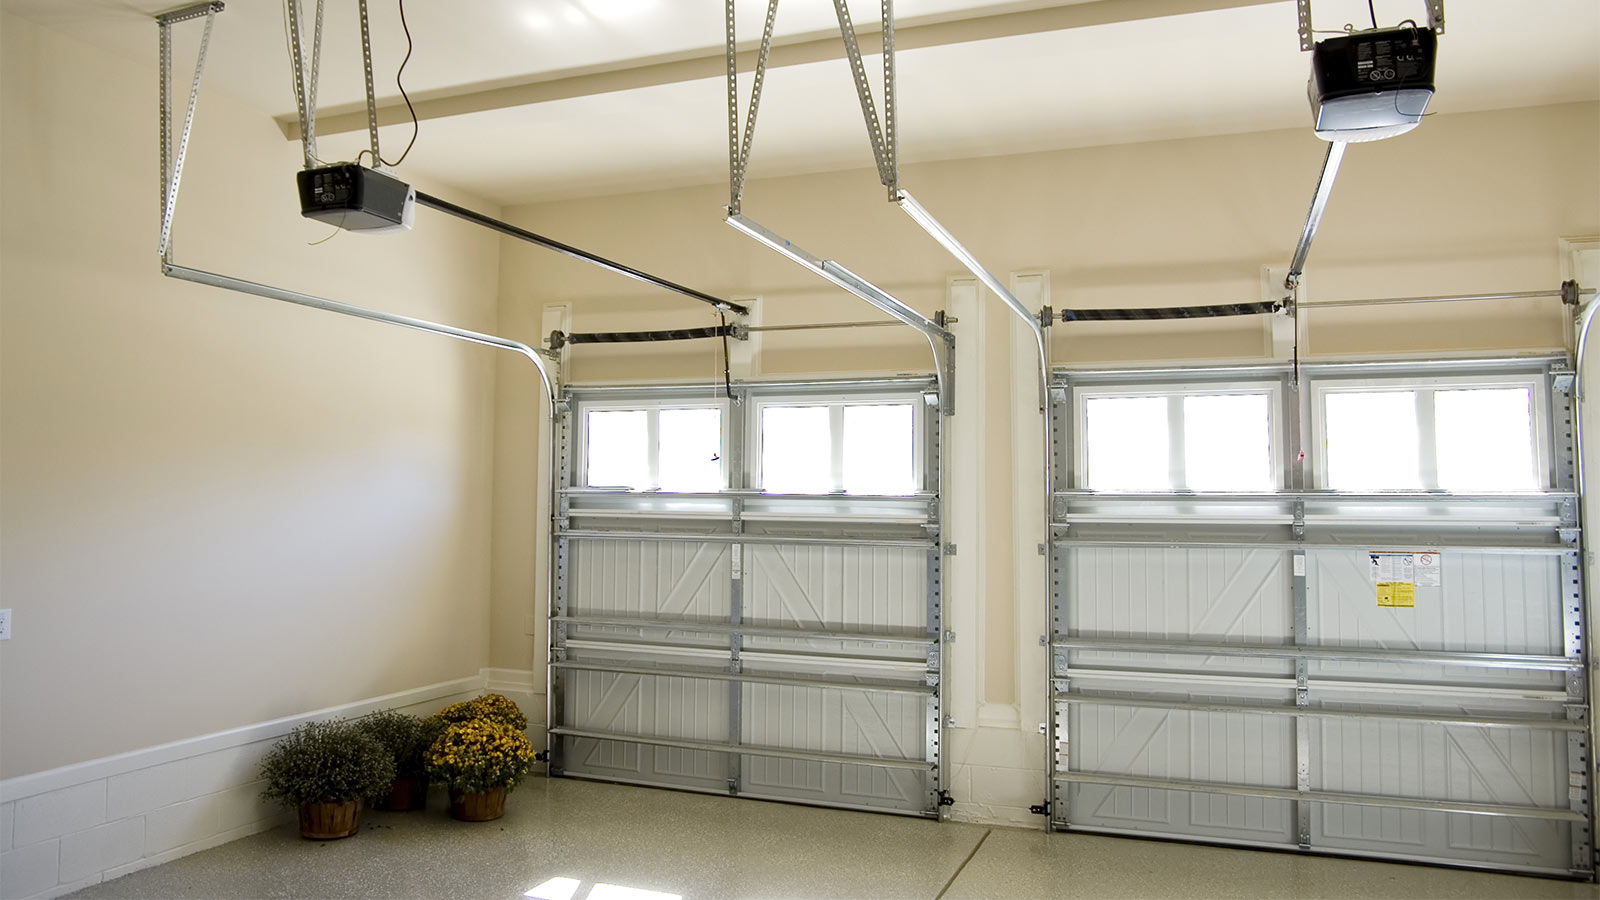 Sectional Garage Doors from Roller Shutters Rayleigh suppliers.